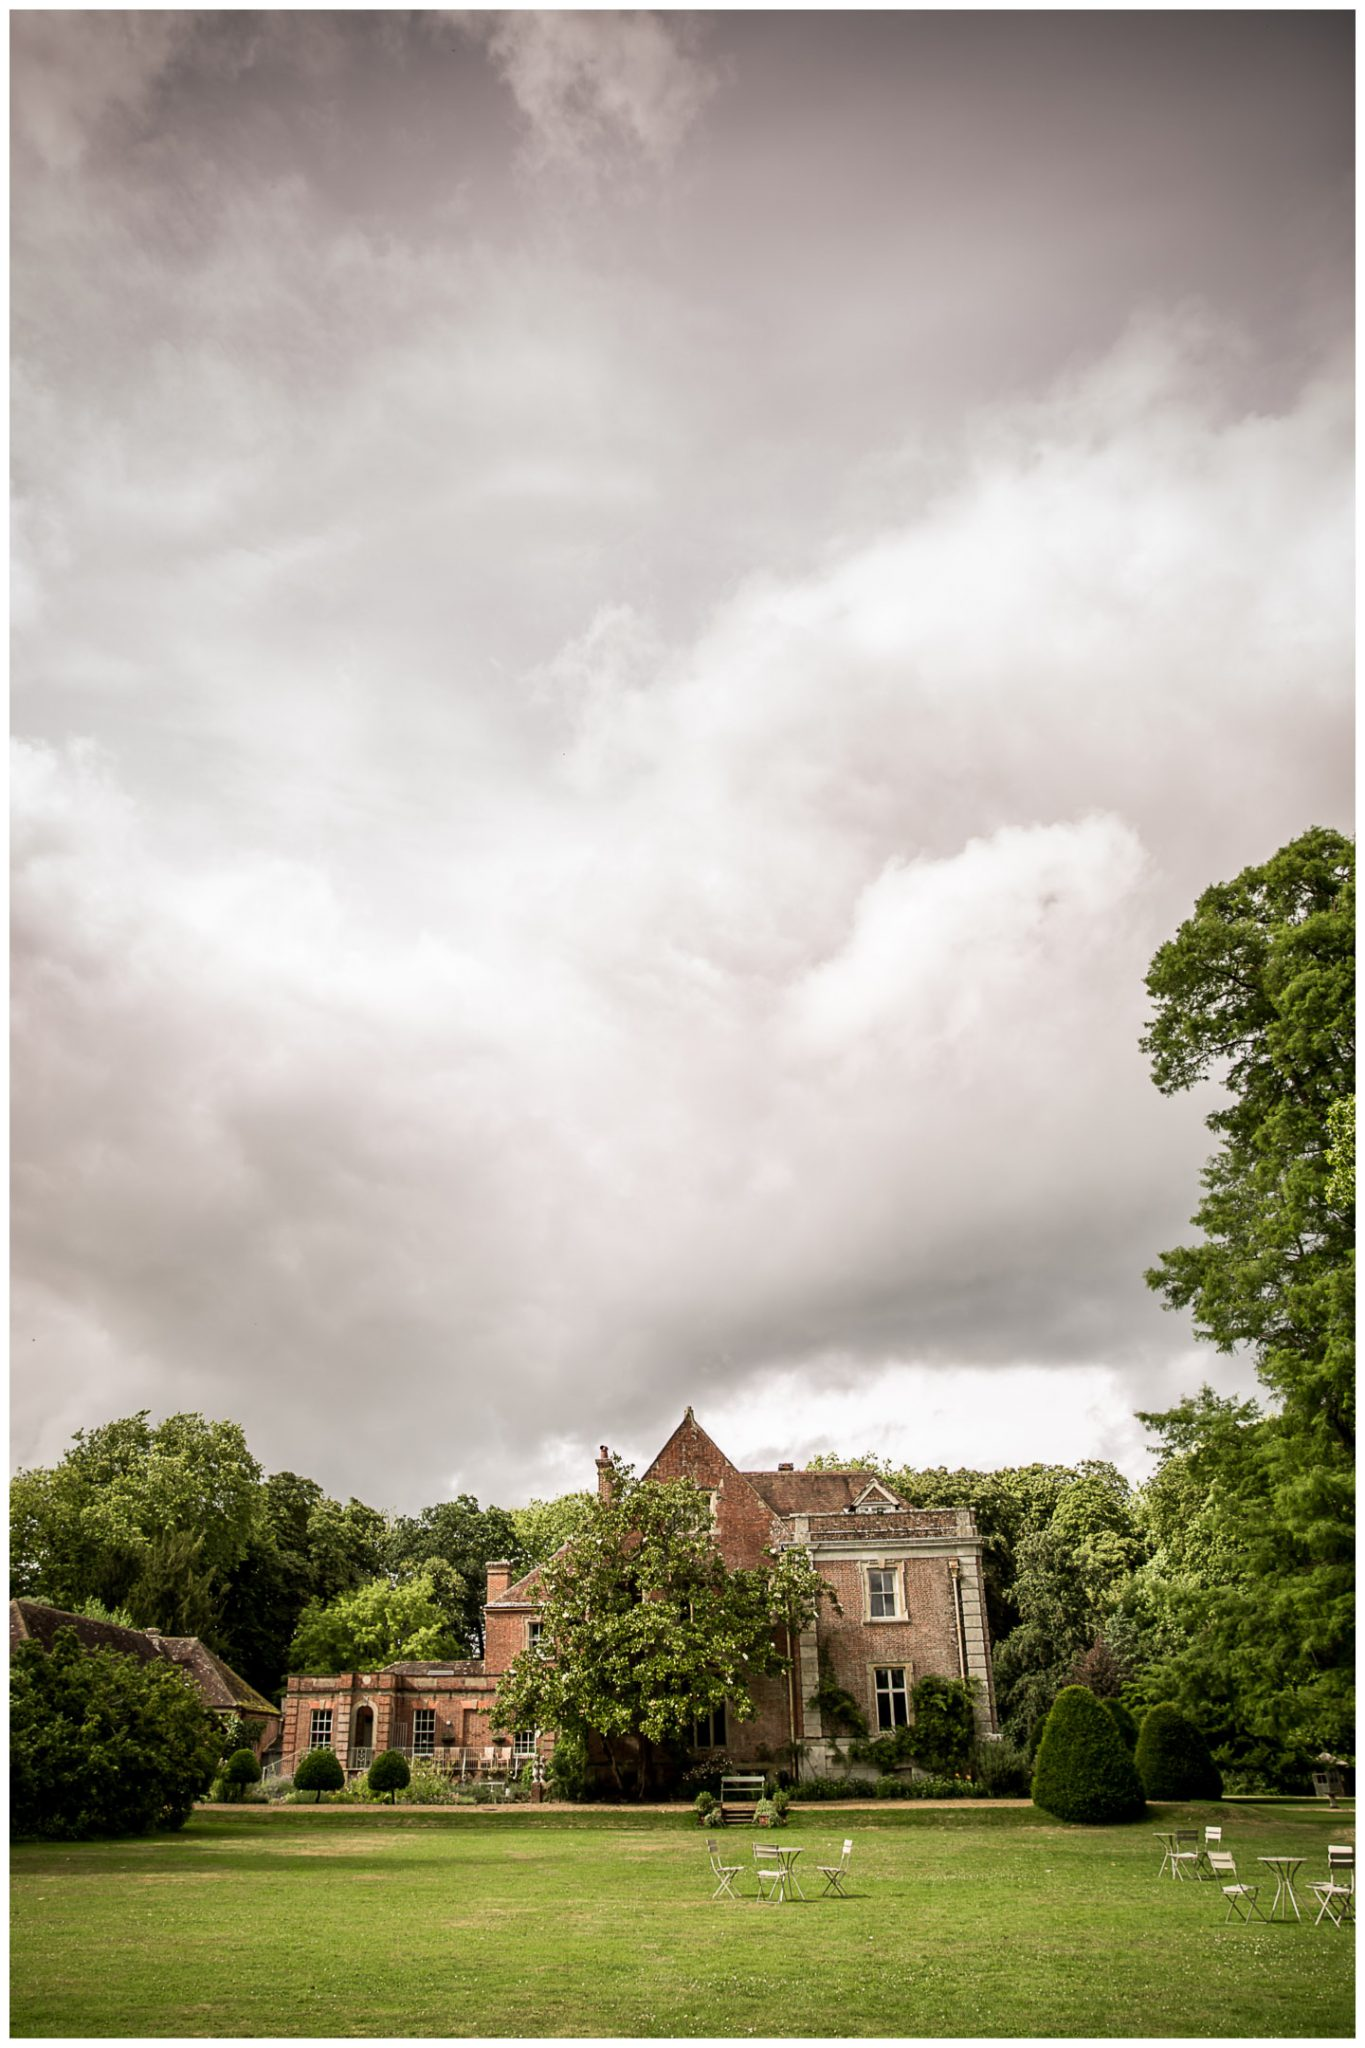 Photograph of the rear of the house in Wimborne as the clouds roll in